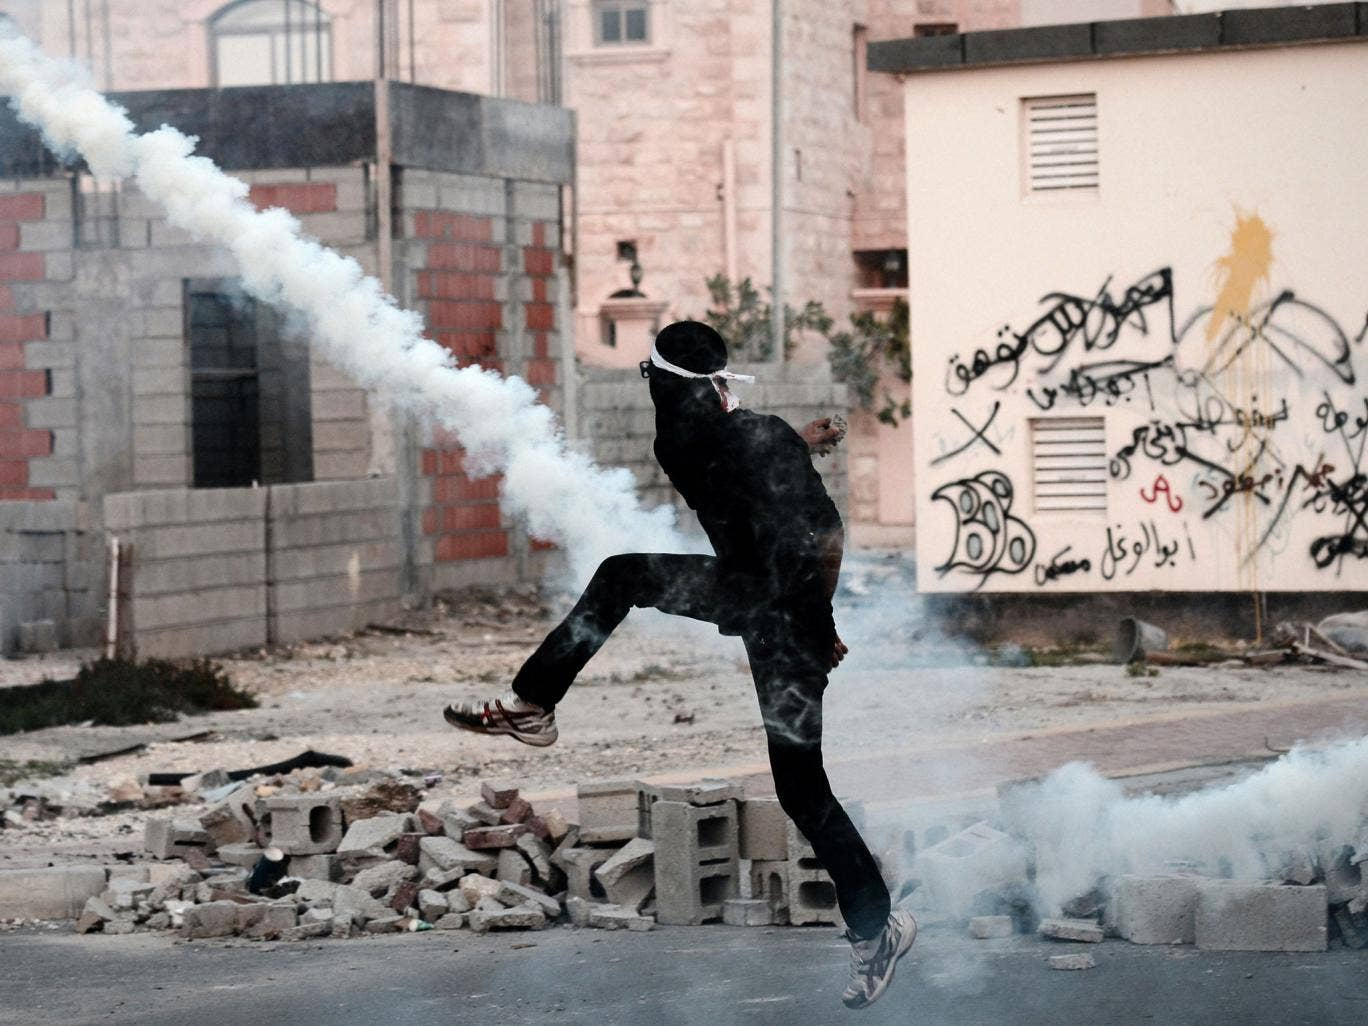 A Bahraini protester clashes with riot police following the funeral of 20-year-old prisoner Fadel Abbas Musalem in the village of Diraz on January 26, 2014